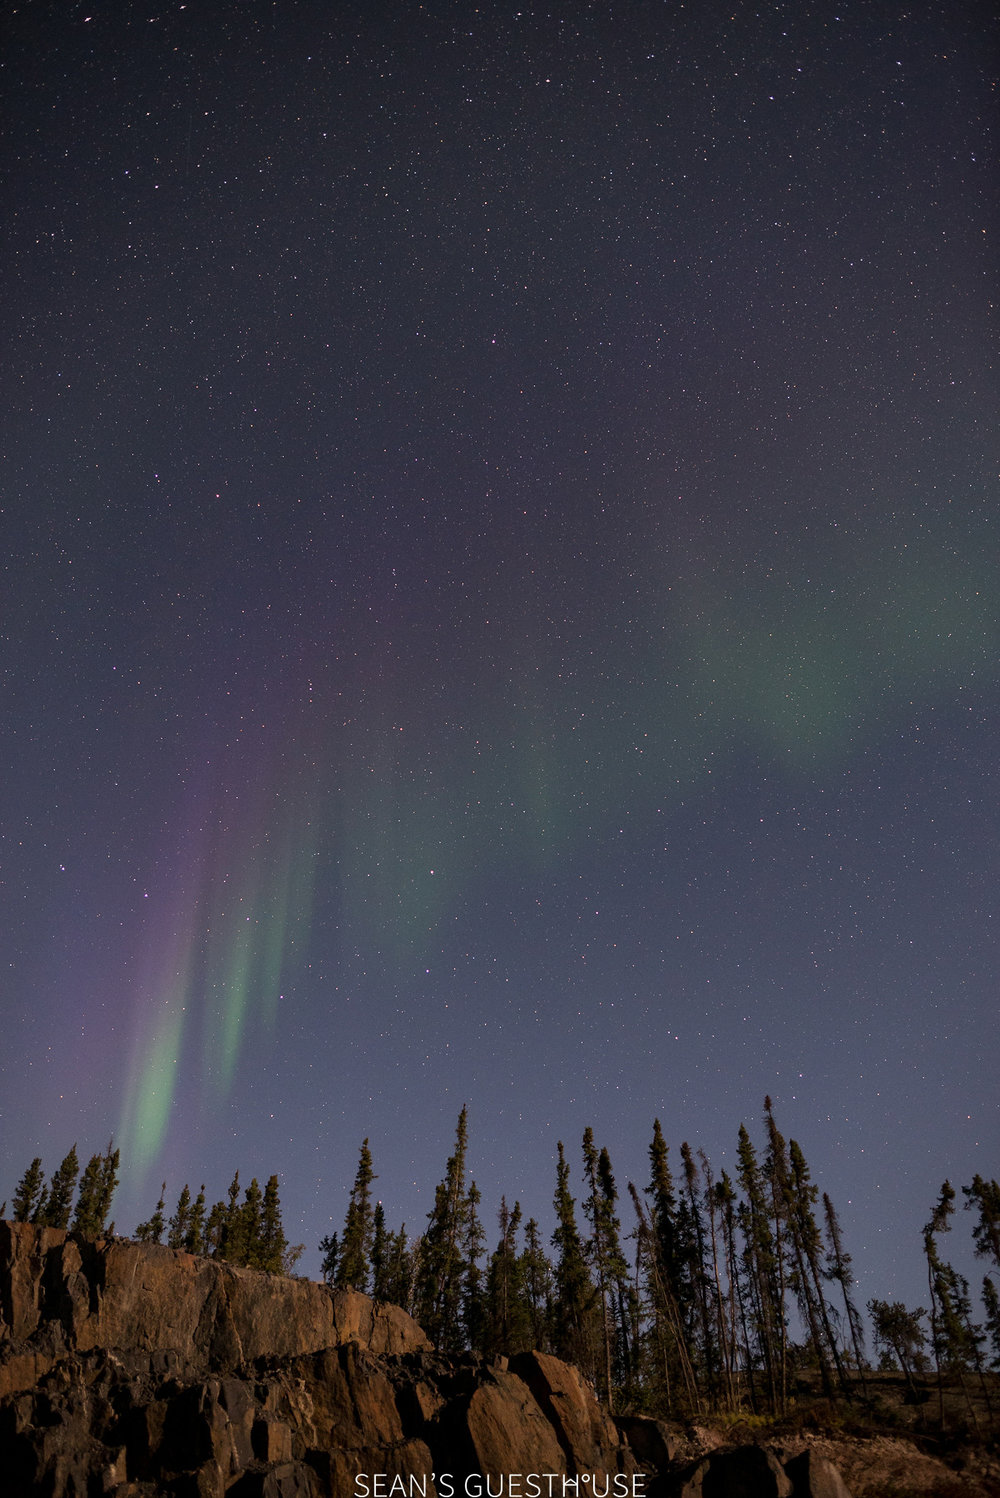 Sean's Guesthouse - Northern Lights in Yellowknife - 4.jpg